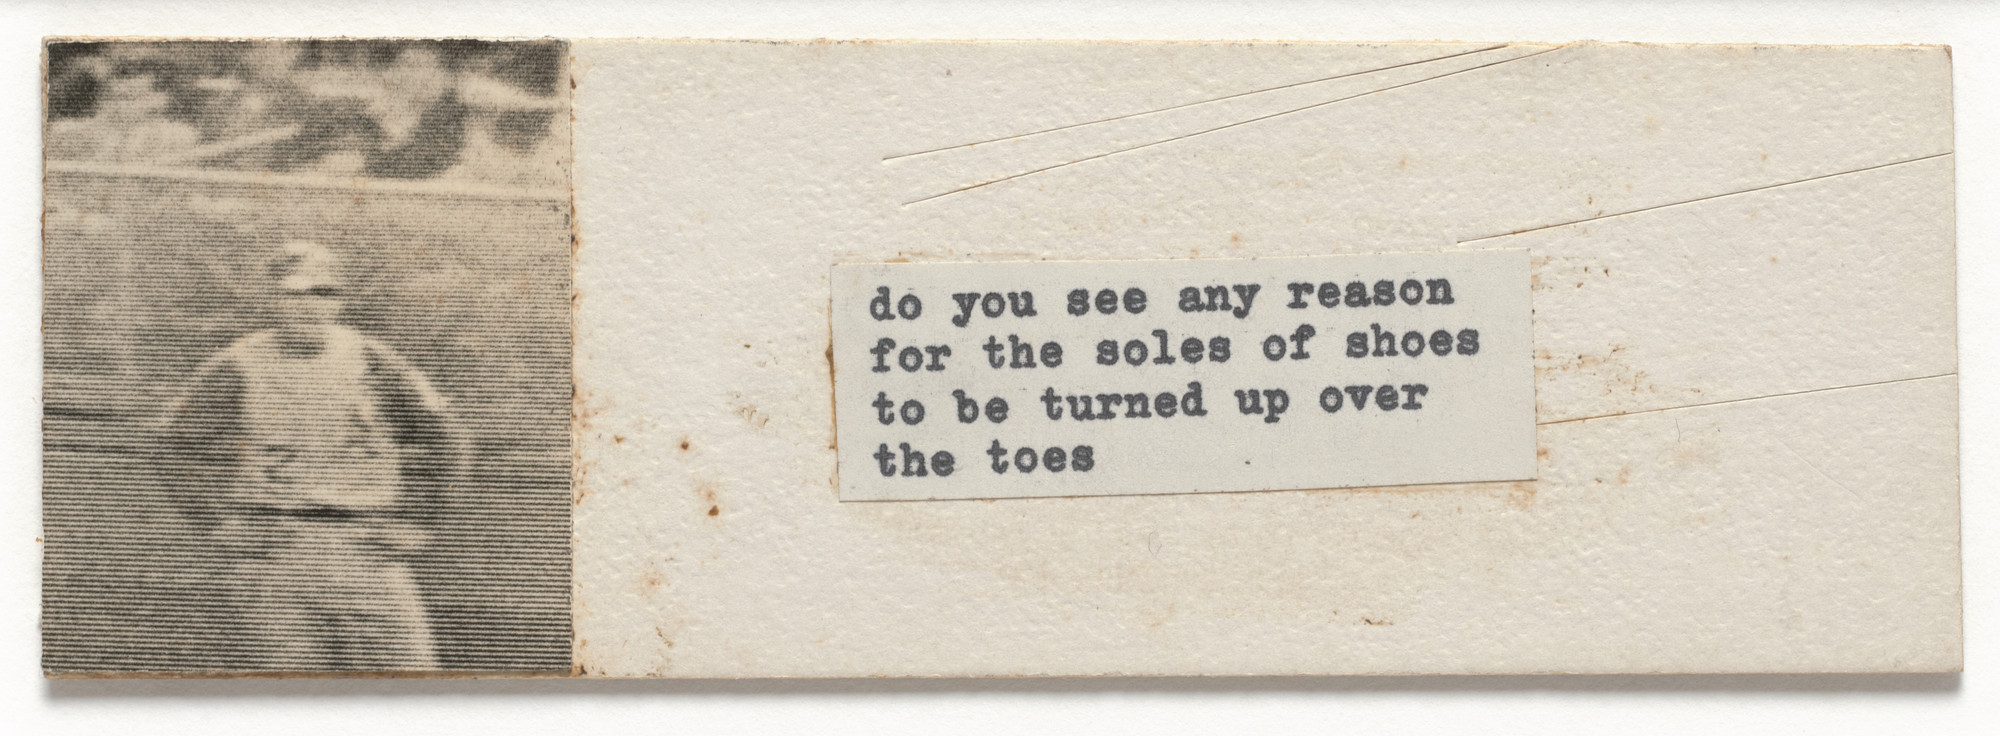 Robert Watts. Mechanical for Do You See Any Reason for the Soles of Shoes to Be Turned up over the Toes. c. 1962–63